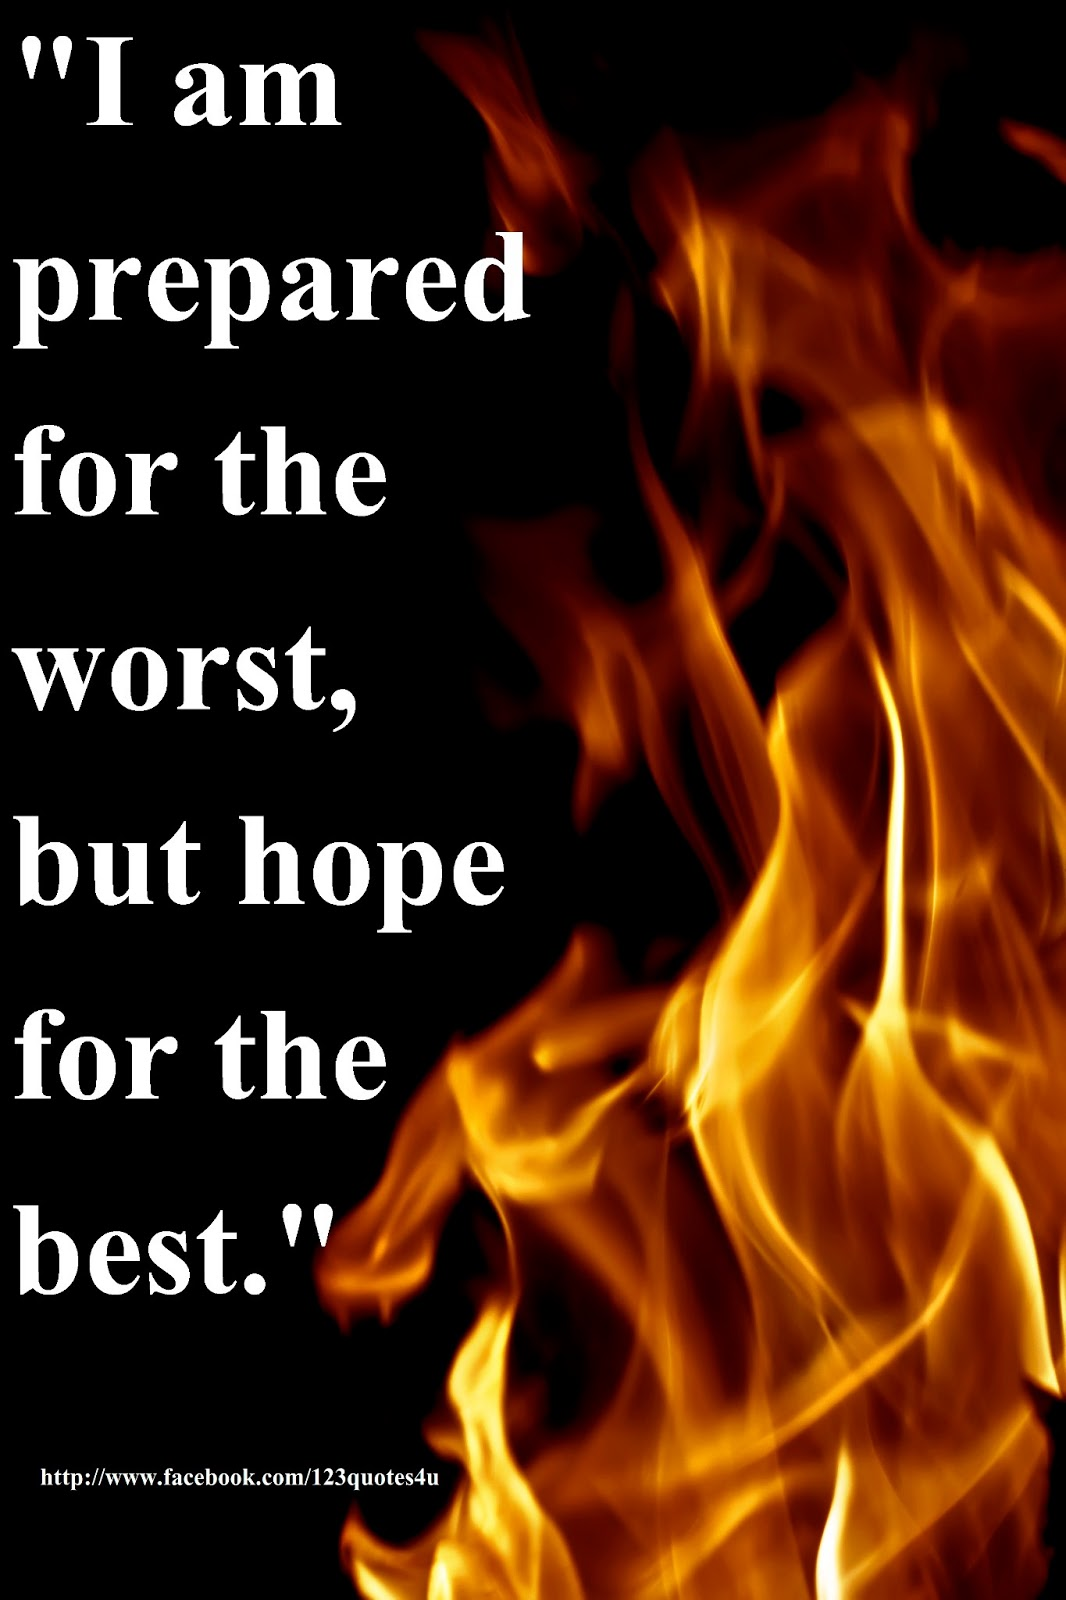 I Am Prepared For The Worst But Hope For The Best Quotes About Life